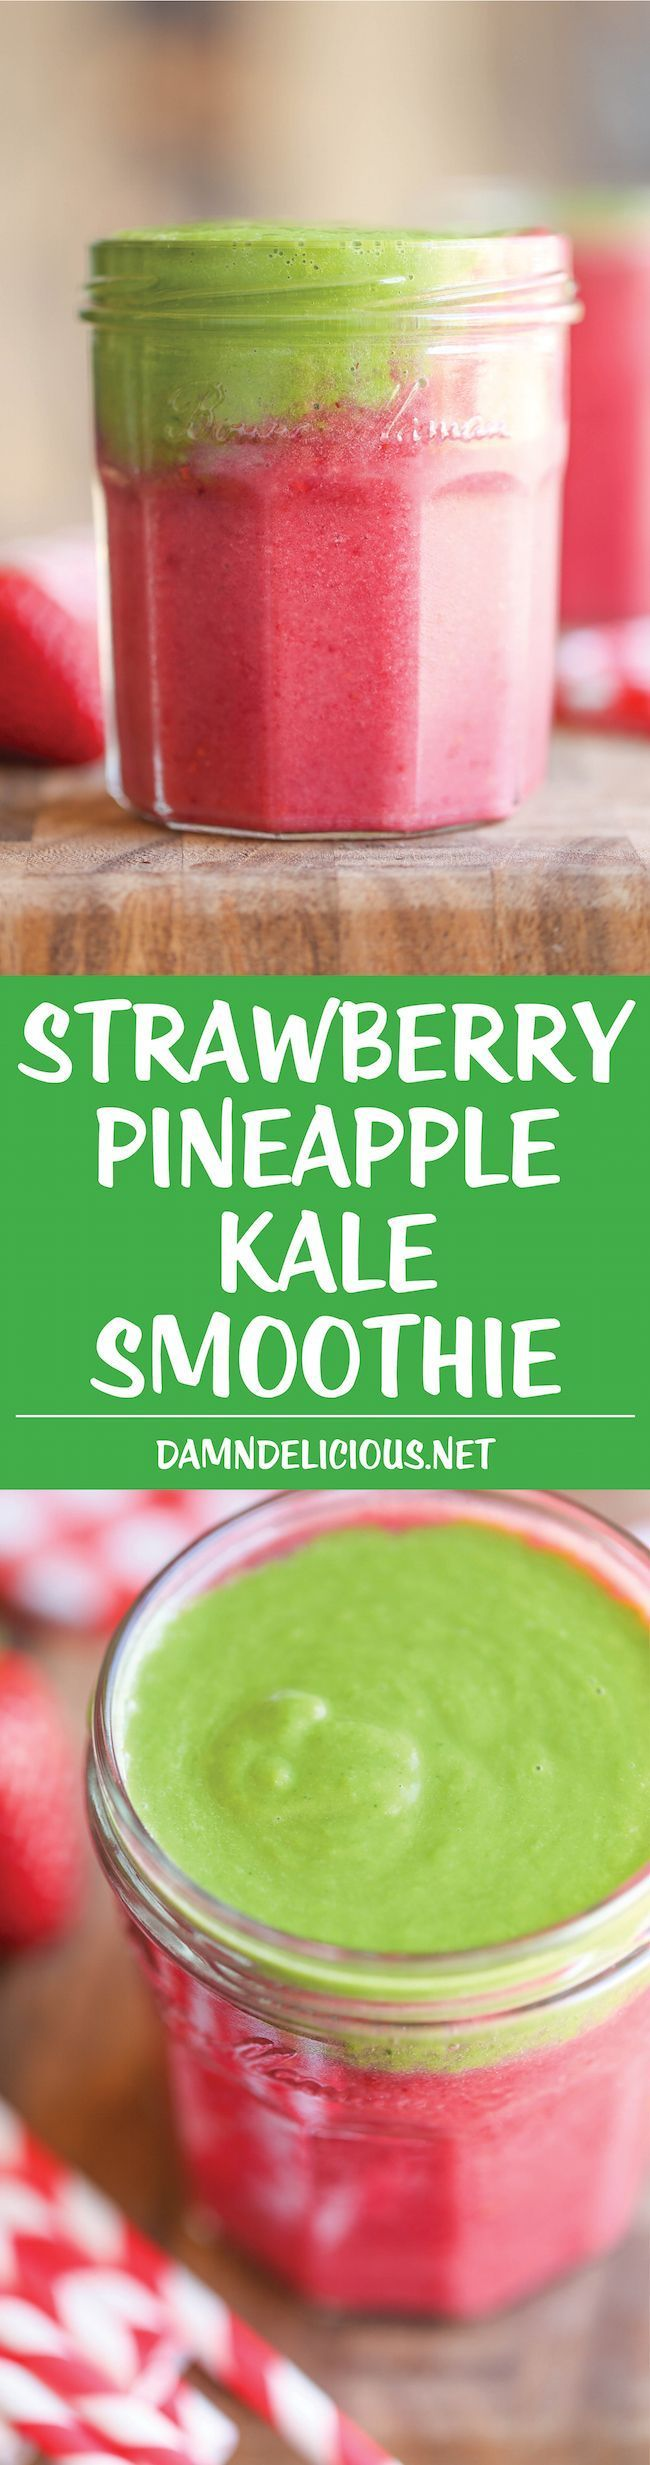 Smoothie your Pineapple Strawberry smoothie A absolute canada doesn     t Kale An power packed  healthy  must for even woolrich nutritious mornings  that   taste